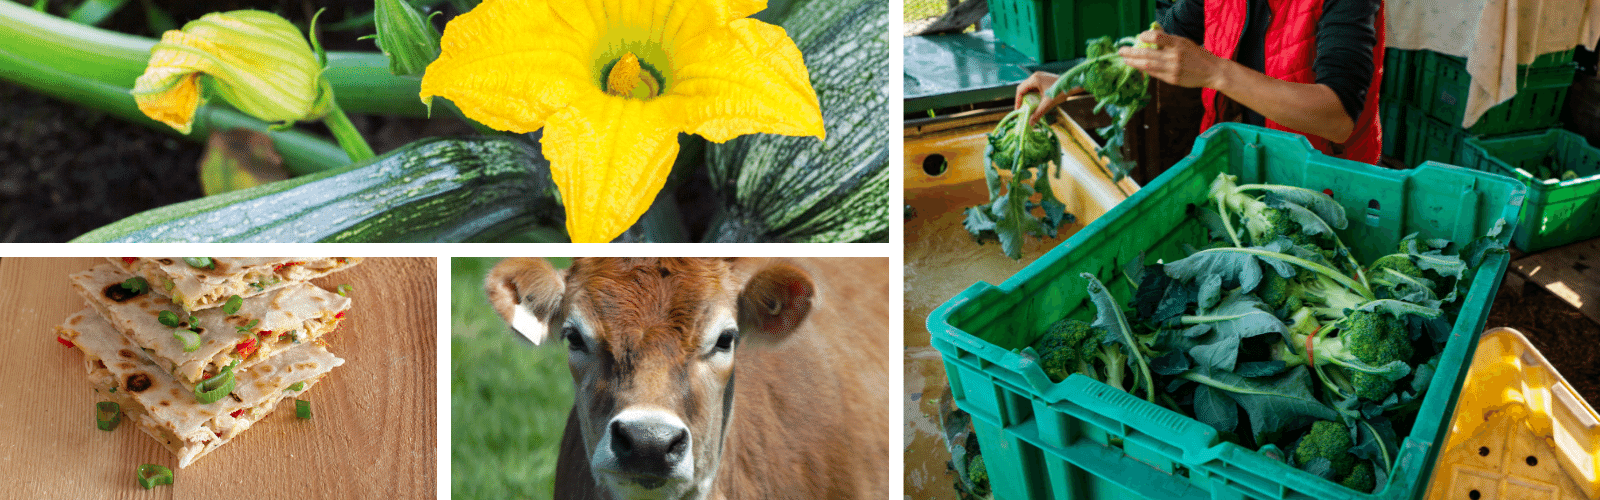 Collage of harvesting vegetables, cow, and quesadillas